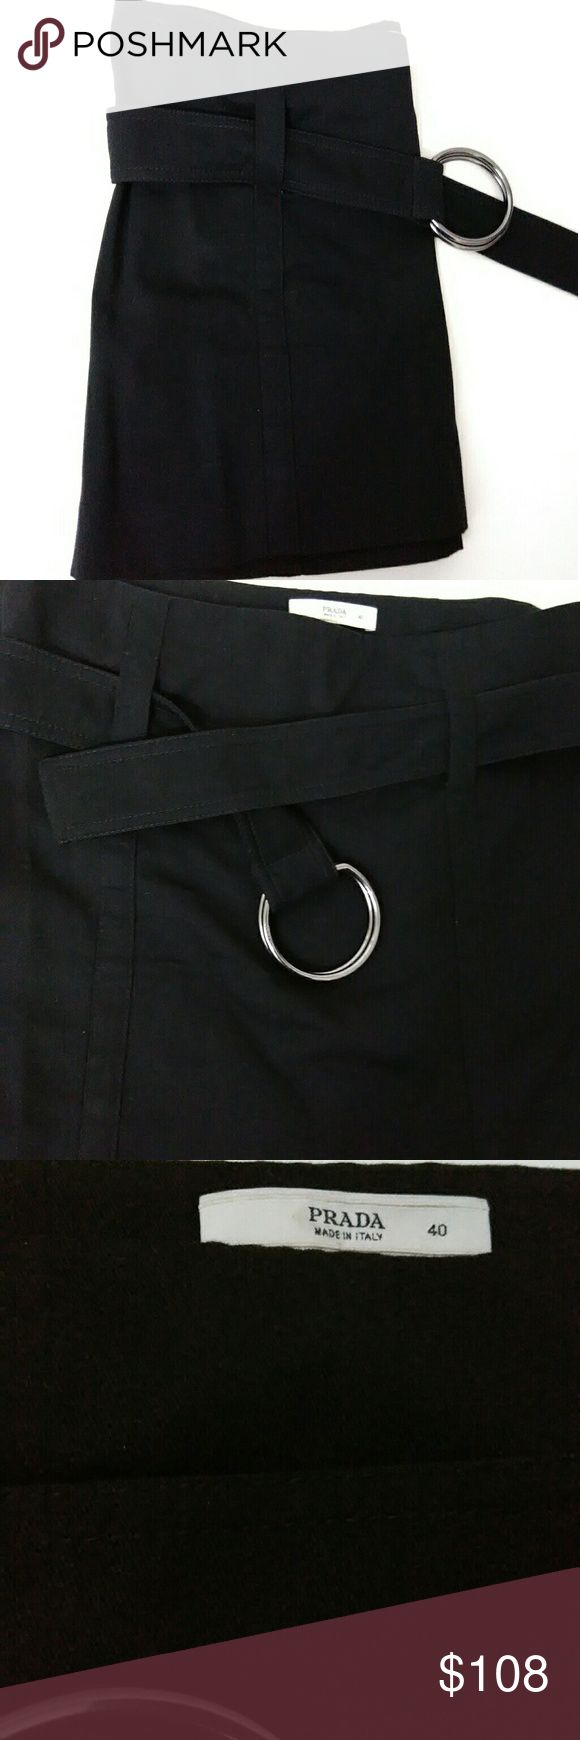 """PRADA Black Skirt Size 40 Very elegant Authentic Prada Black Skirt. Size is women's 40 Made in Italy 100% cotton. Approx measurements are Hip 16"""" and Length 13.5  This skirt is a very dark black ,it is not faded at all . I am really unsure if this was ever worn , it is like New. The skirt features a black belt with 2 rings to secure it. Each ring is silver in color and has """"Prada"""" stamped into it . Skirt has zipper on side. RN 98339 Prada Skirts"""